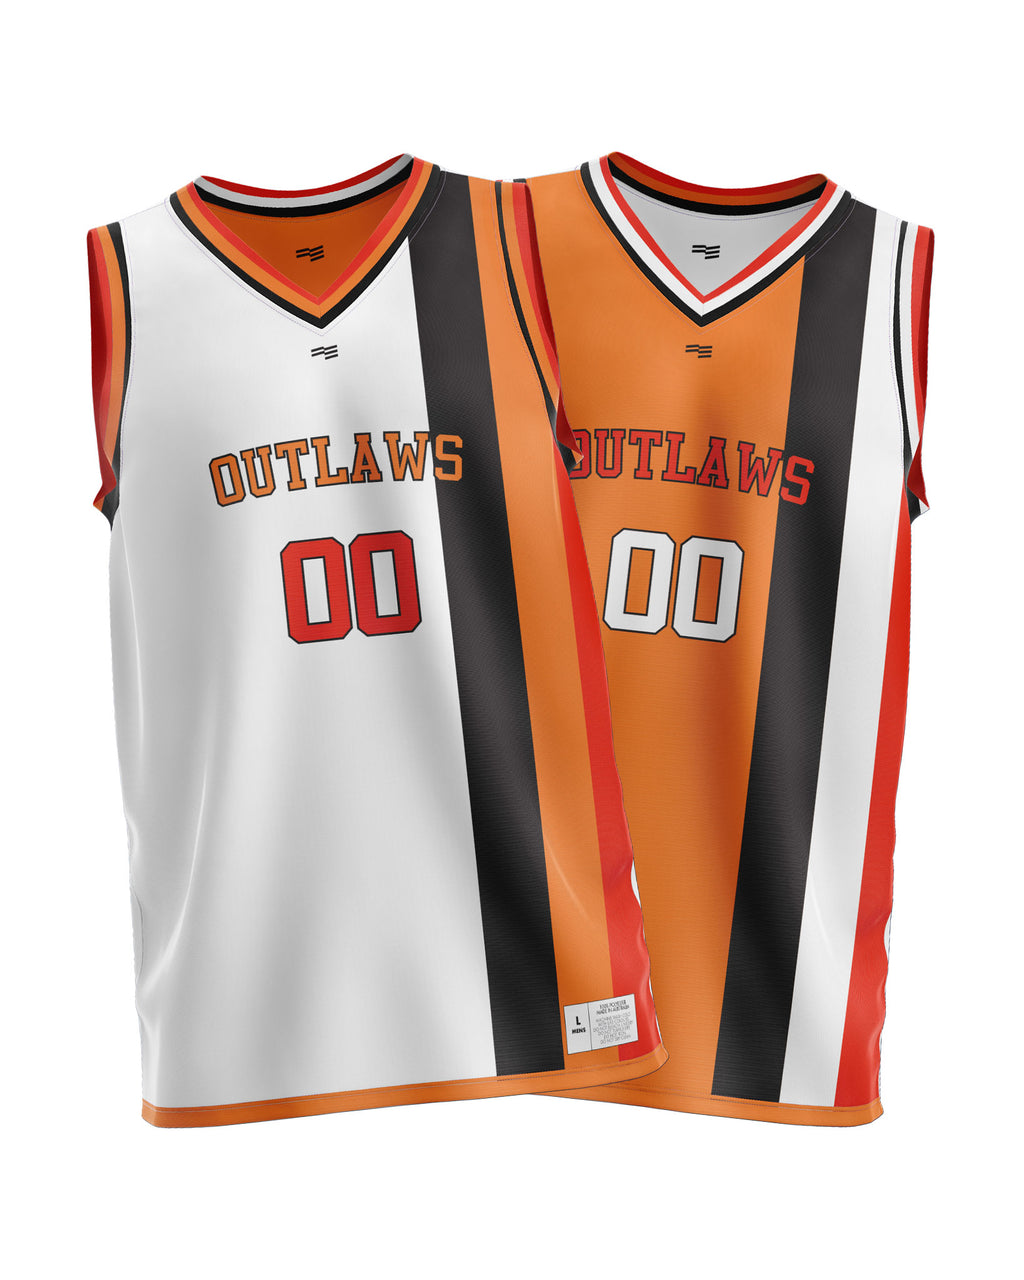 Outlaws Reversible Jersey - Mens